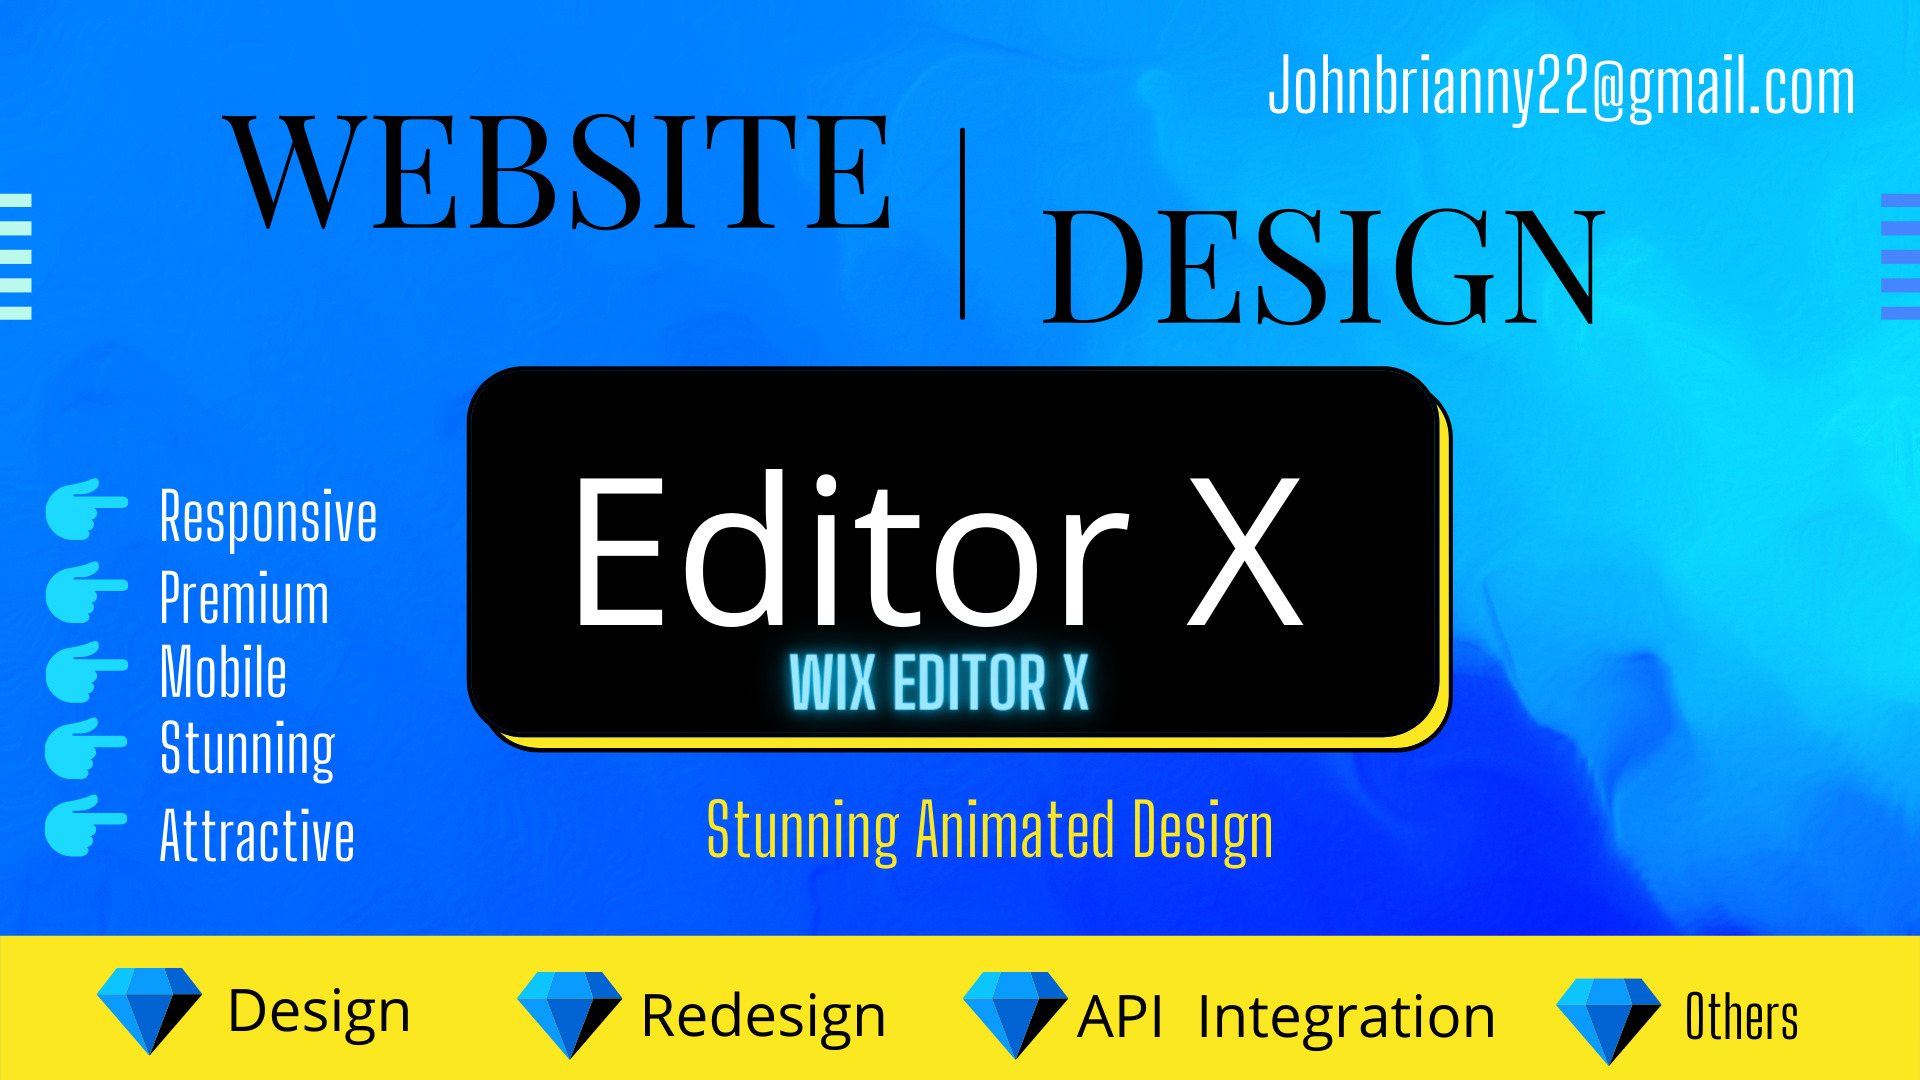 I will design stunning animated wix website or wix editor x website, FiverrBox